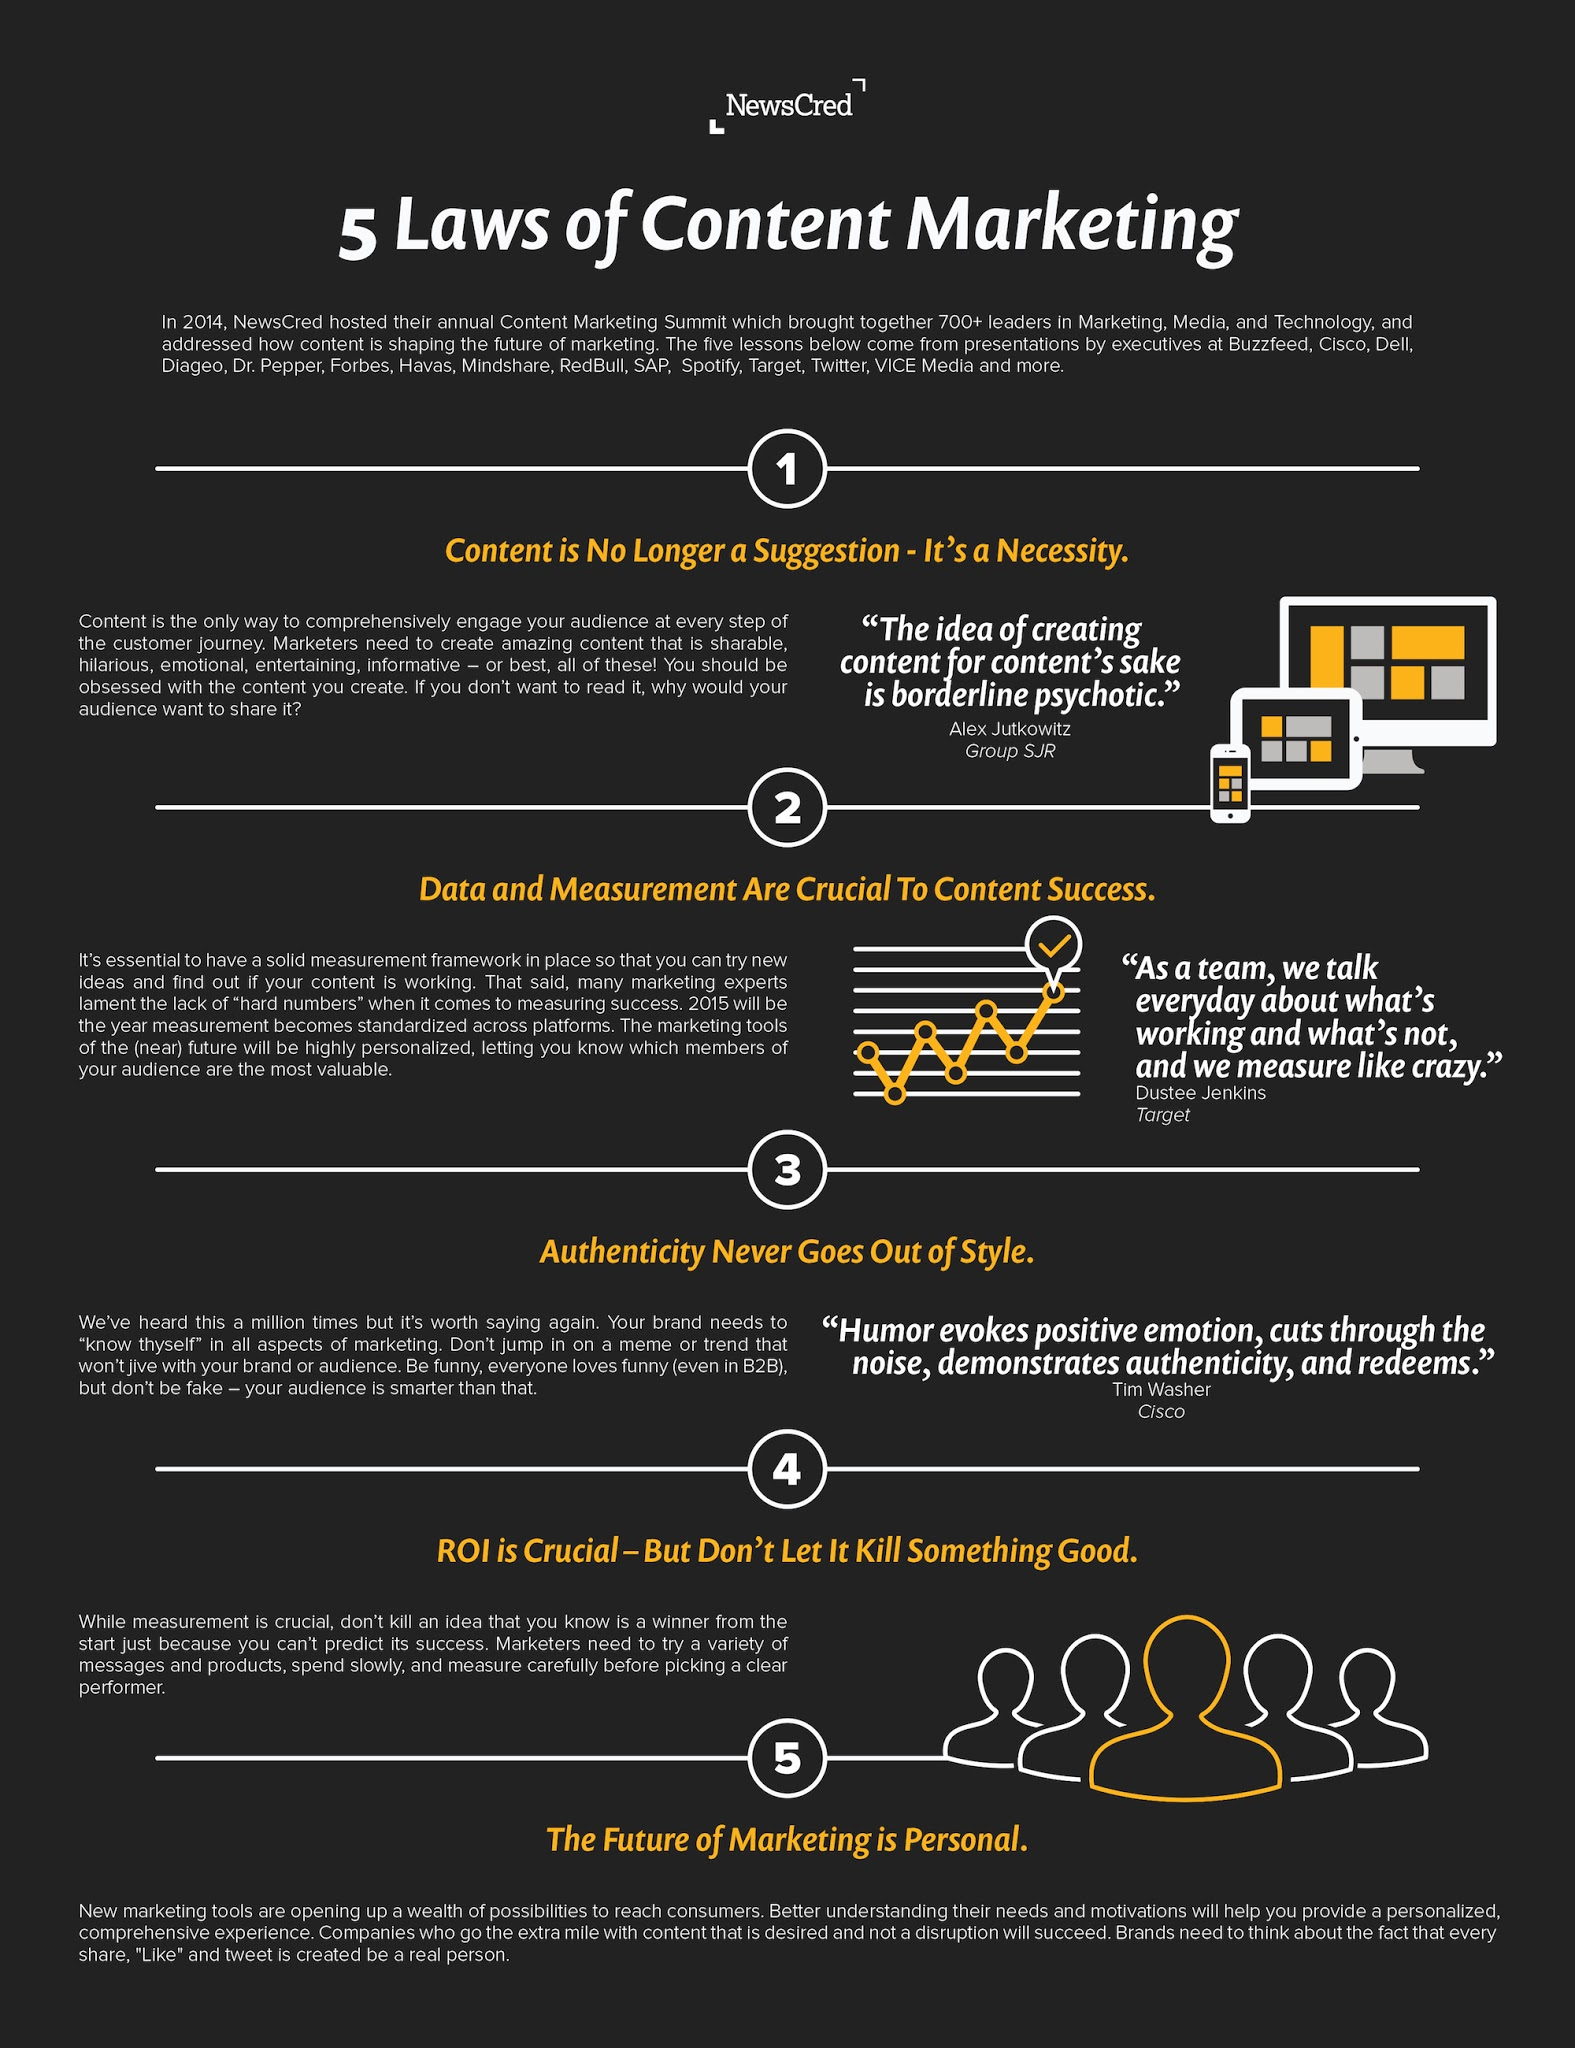 The 5 Laws Of Content Marketing - #Infographic #ContentMarketing